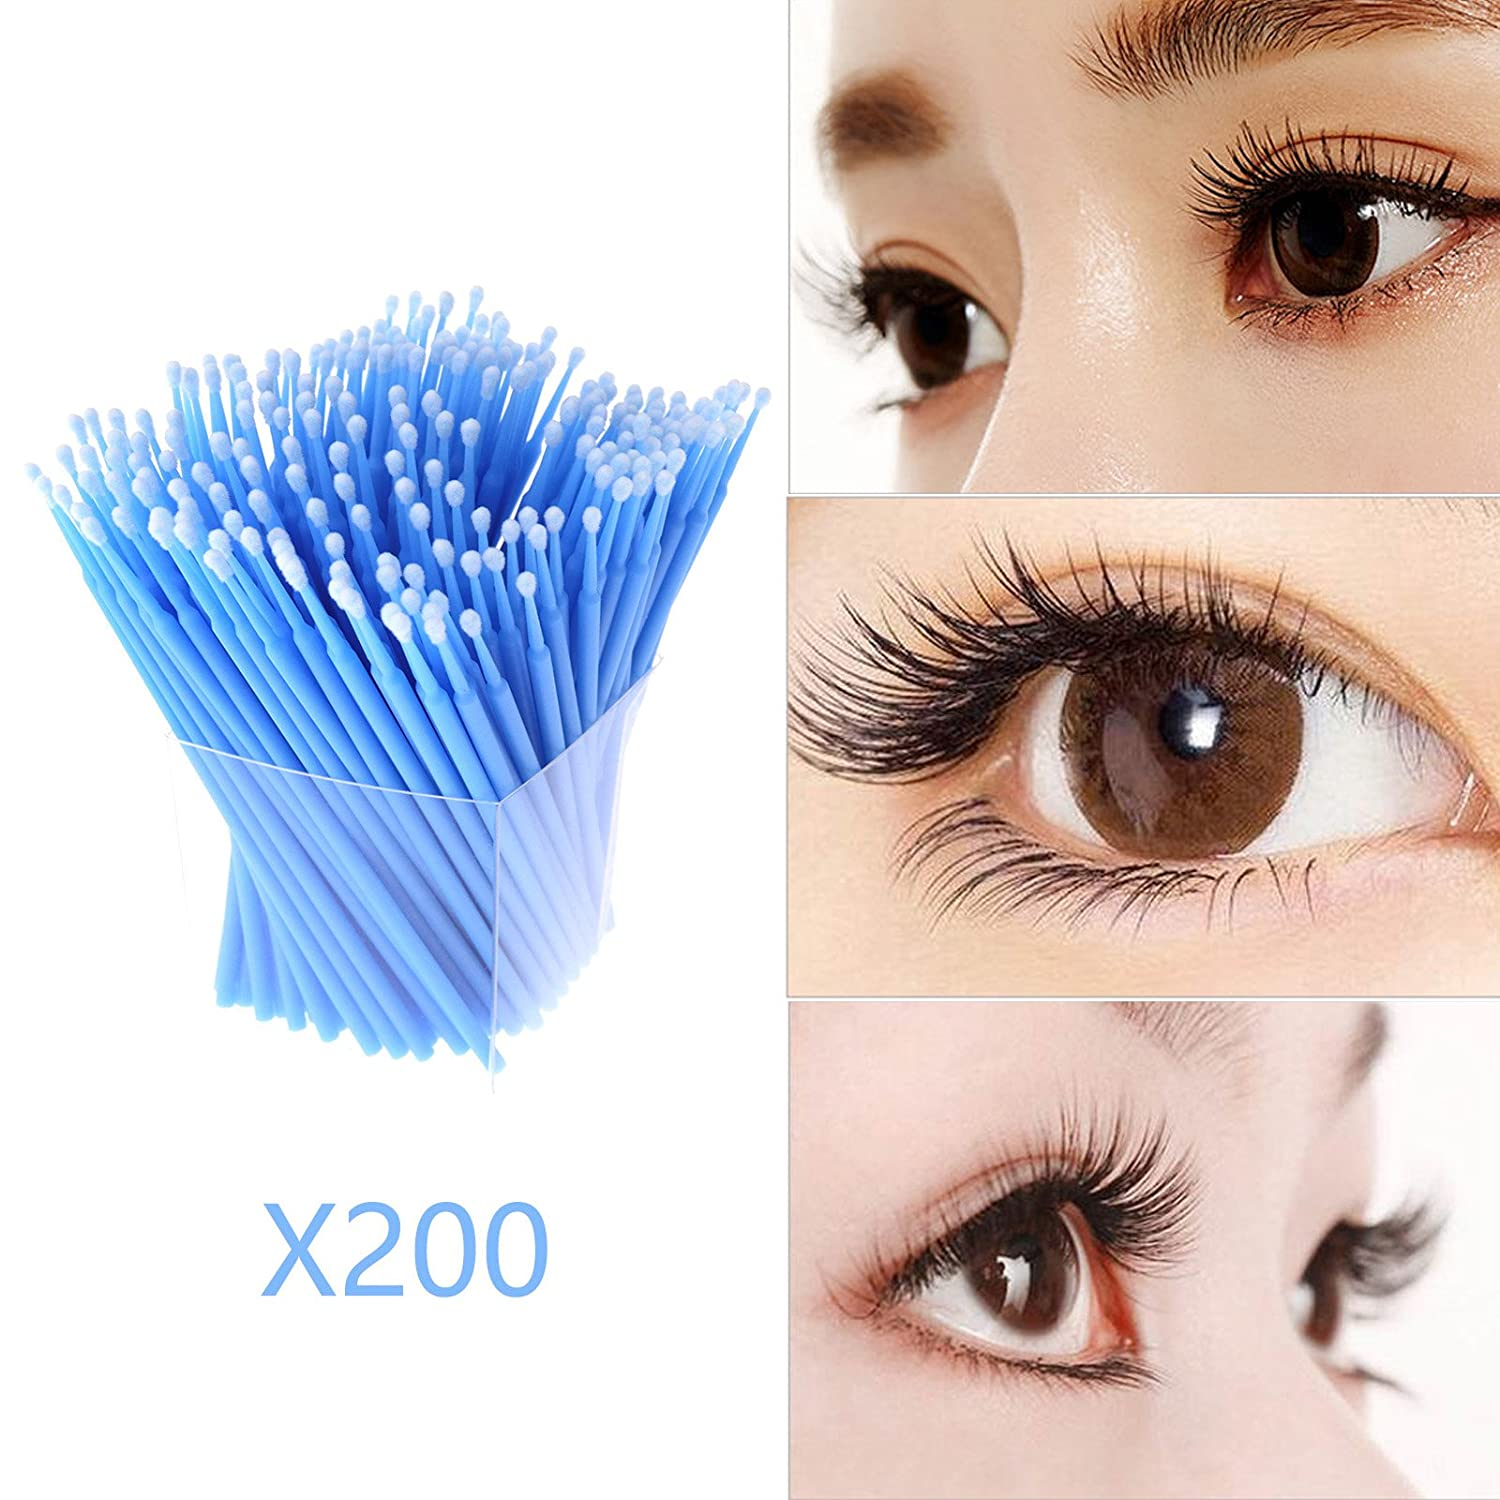 100x Microbrush Wimpernverl/ängerung Reinigungsst/äbchen Permanent Make Up Tattoo 2.5mm Blau